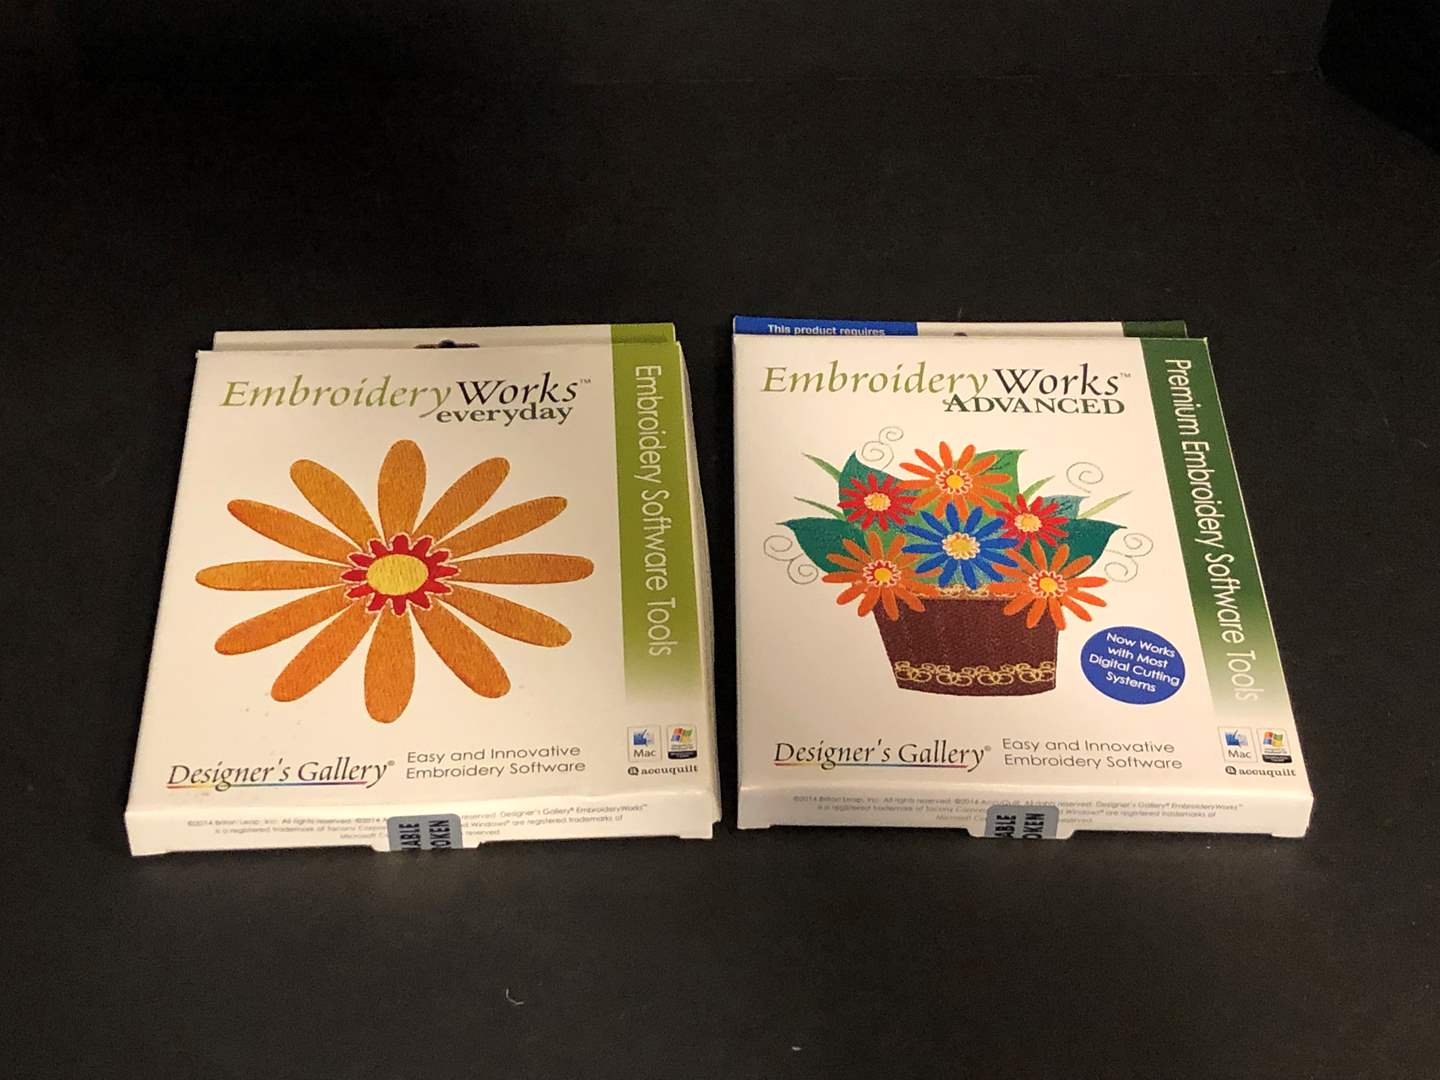 Lot # 191 - Embroidery Works Advanced & Embroidery Works Everyday Software Tools  (main image)